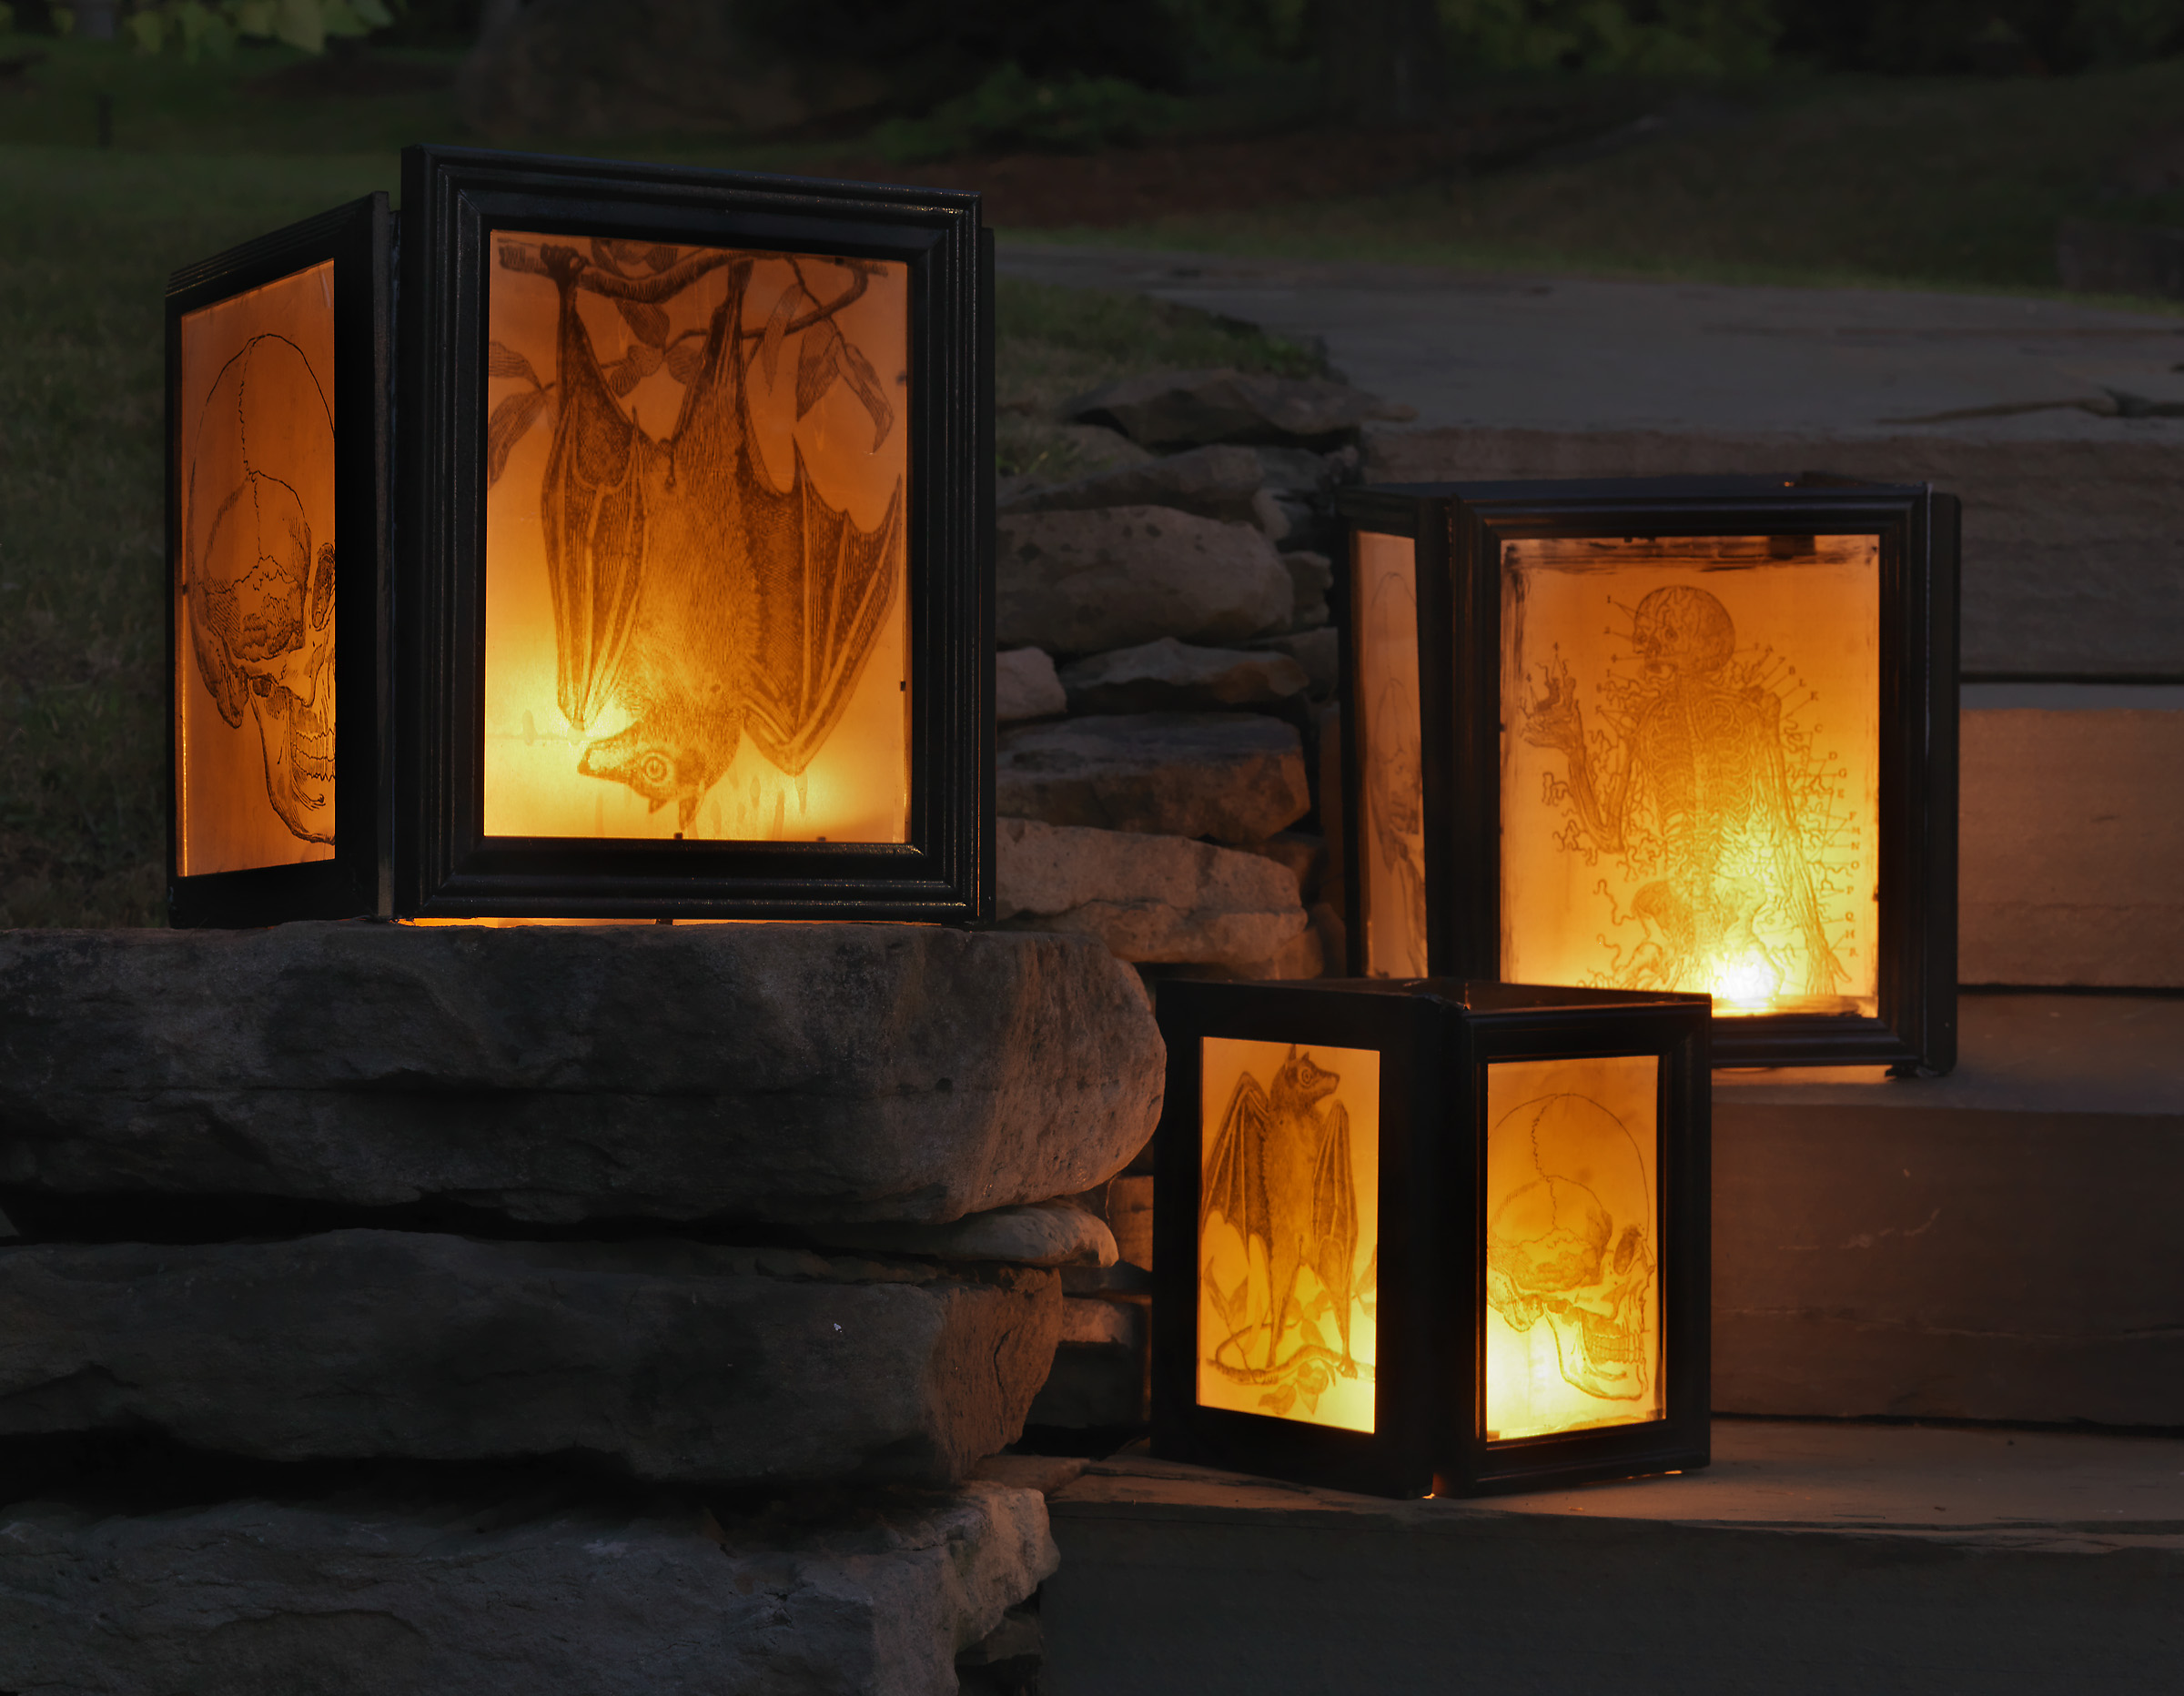 Still one of my favorite Step by Step on DIY NETWORK —  Make Your Own Walkway Holiday Lanterns . Project by Joanne Palmisano